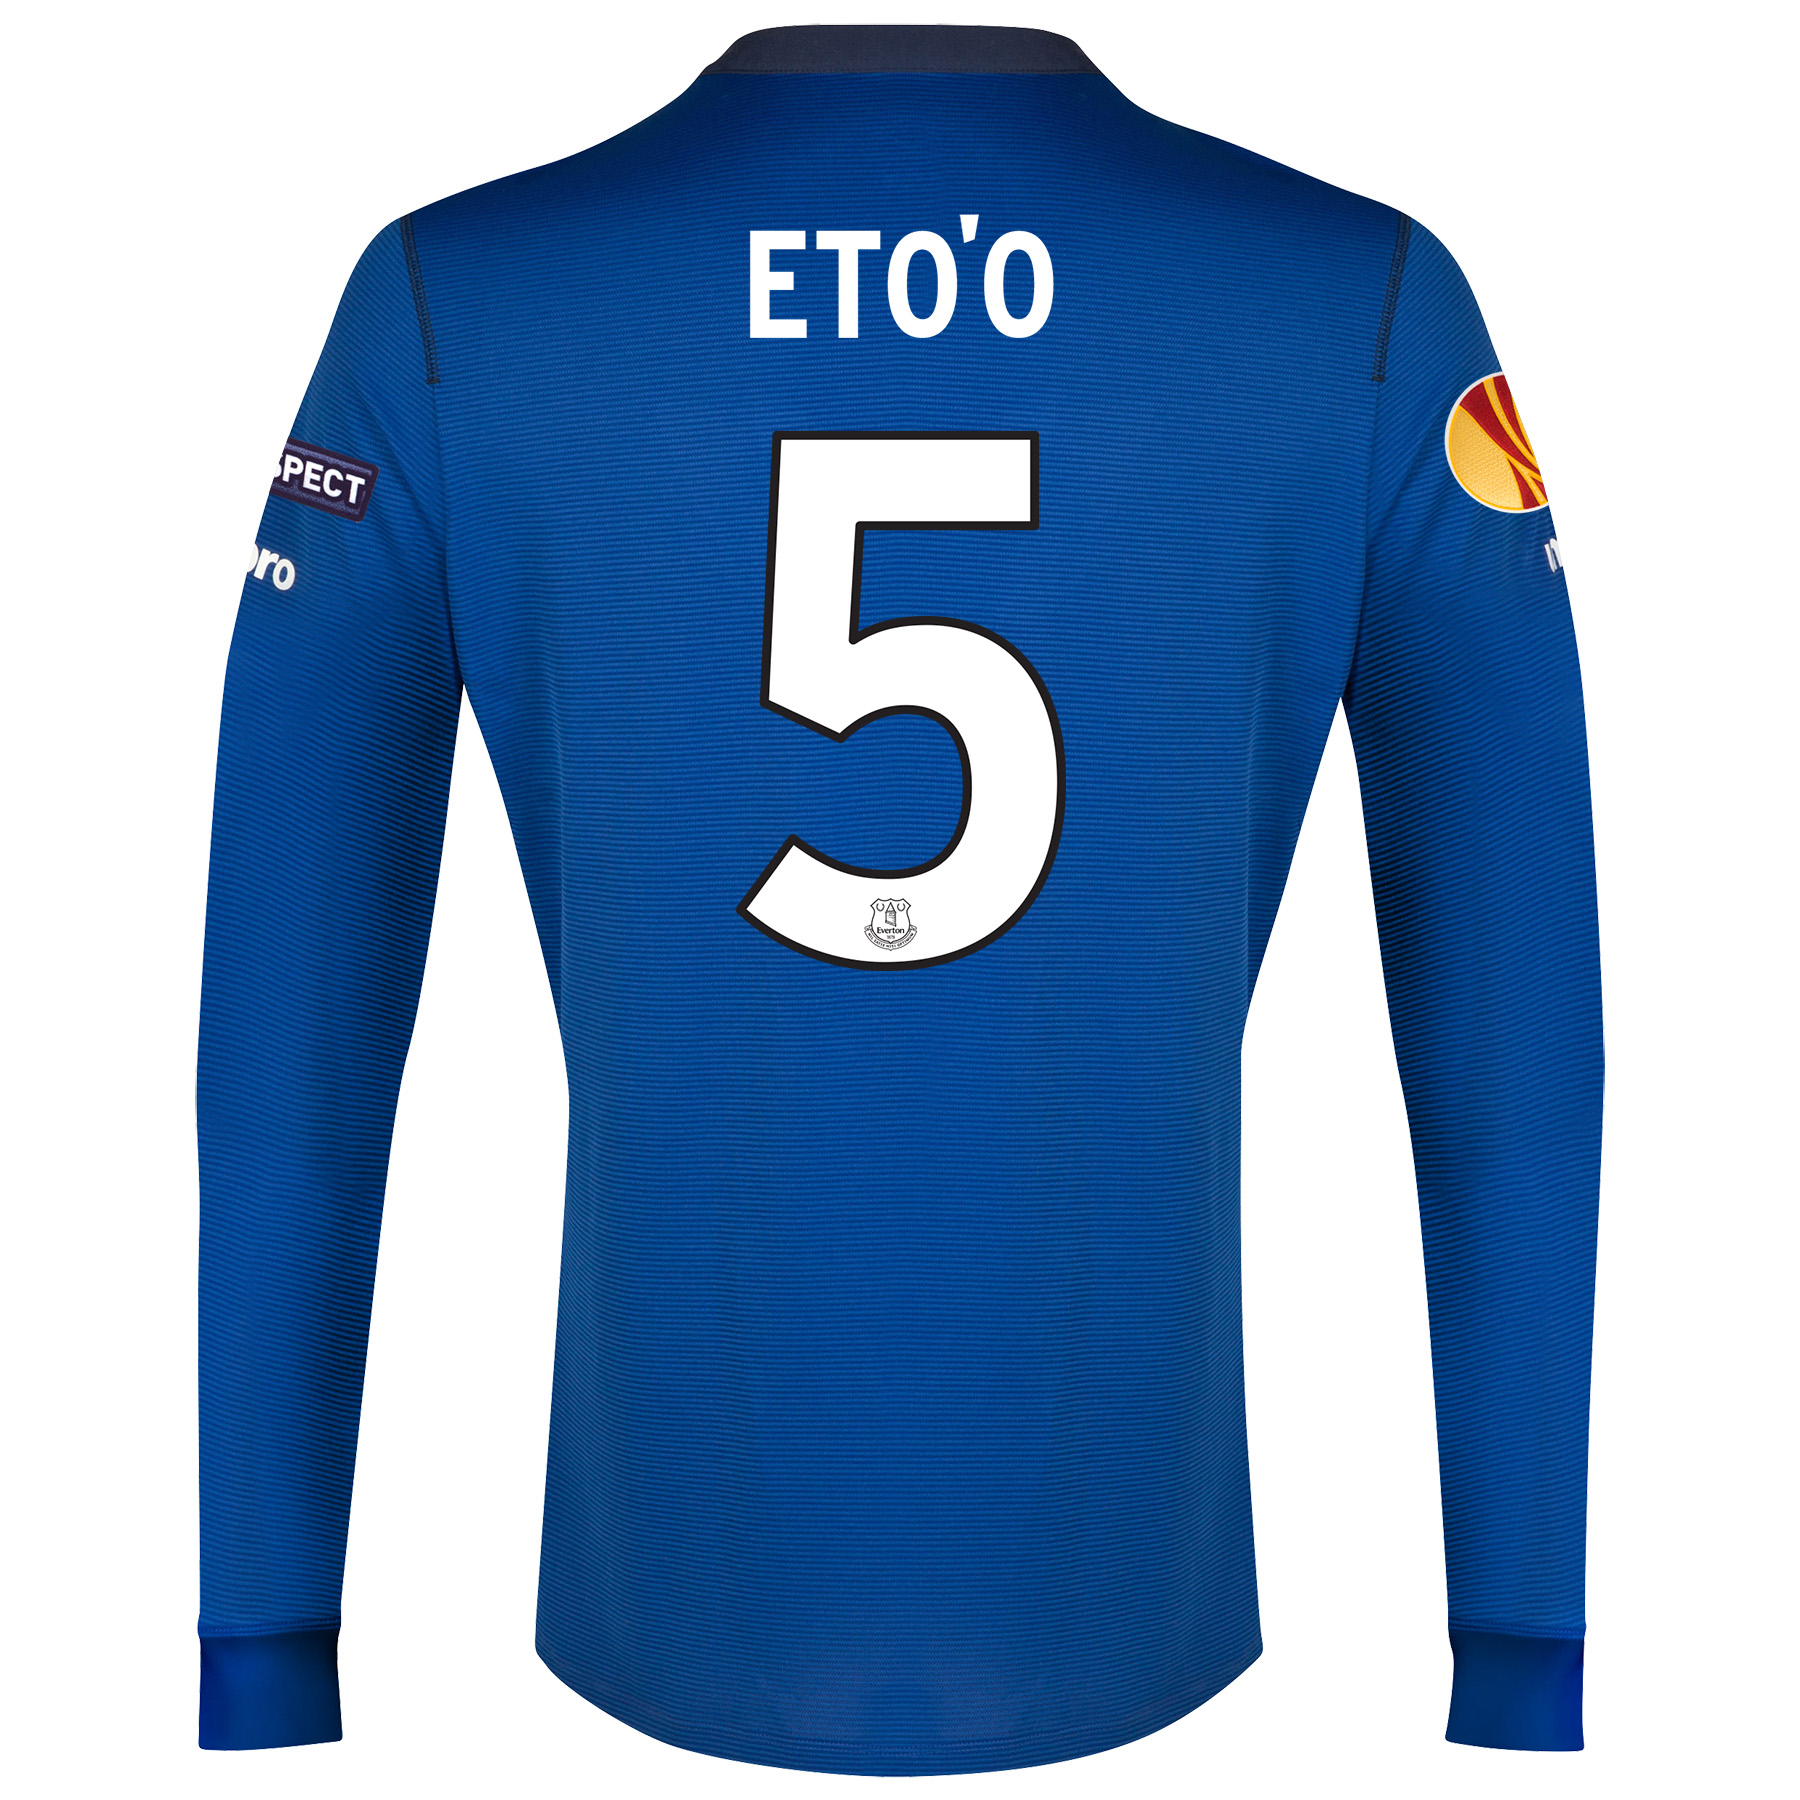 Everton UEFA Europa League LS Home Shirt 2014/15 with Eto'o 5 printing